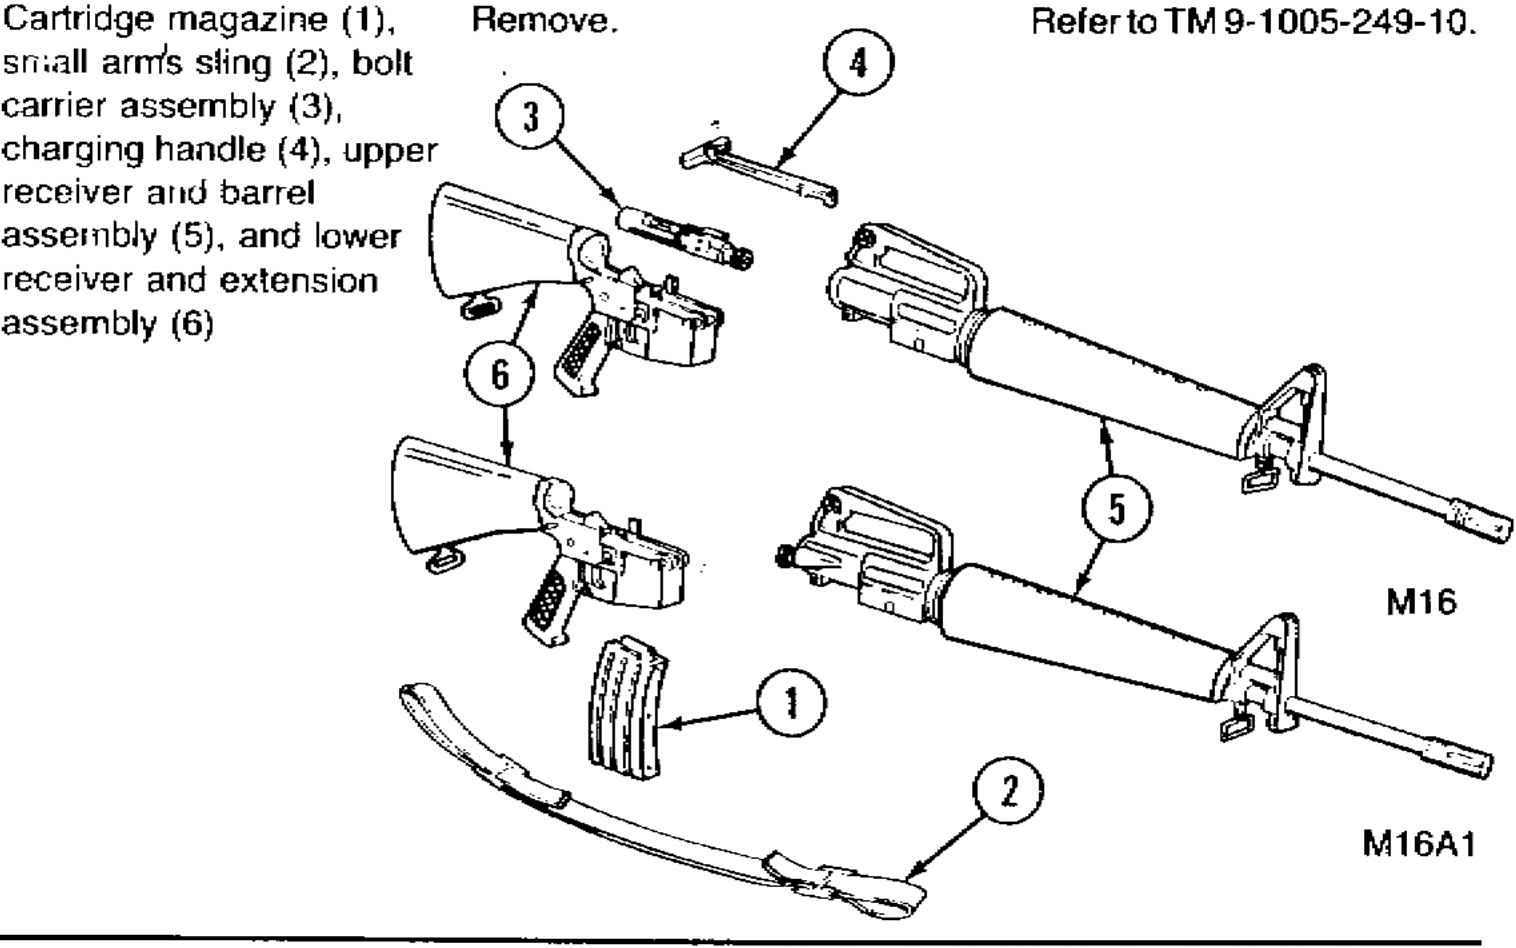 Rifle Parts Labeled